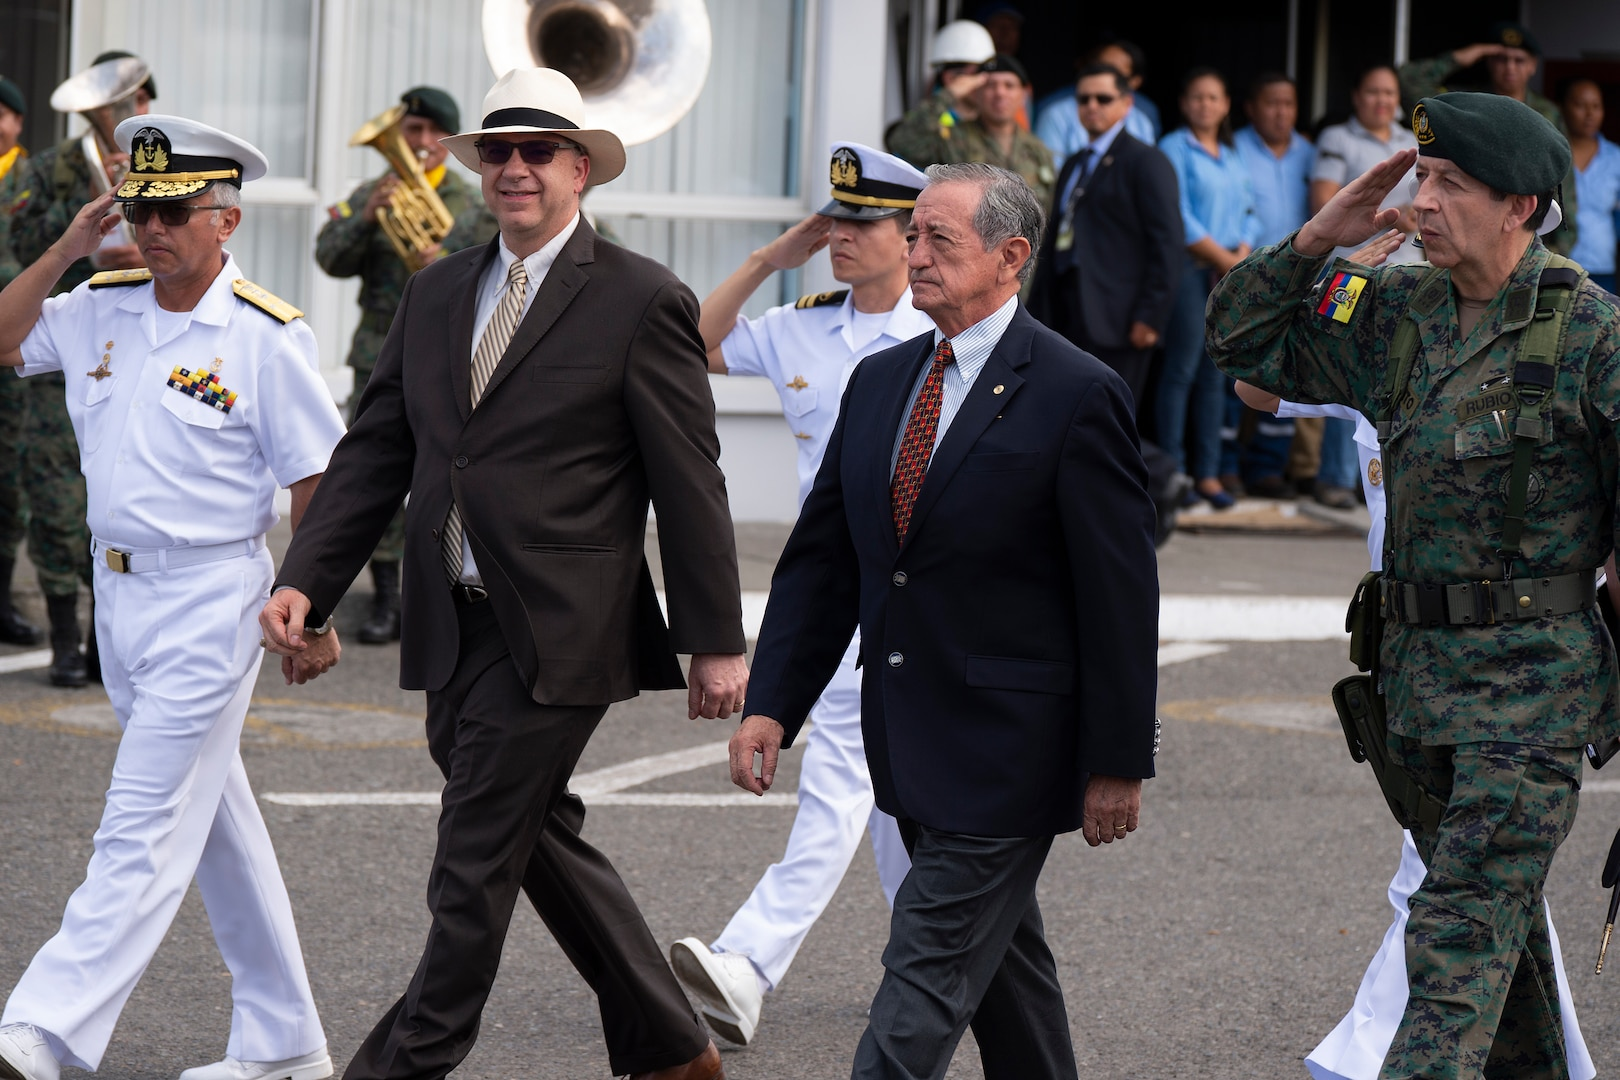 U.S. Ambassador to Ecuador, Todd C. Chapman (center-left) and Ecuadorian Minister of Defense Oswaldo Jarrin (center-right) are escorted during an opening ceremony at one of two medical sites.